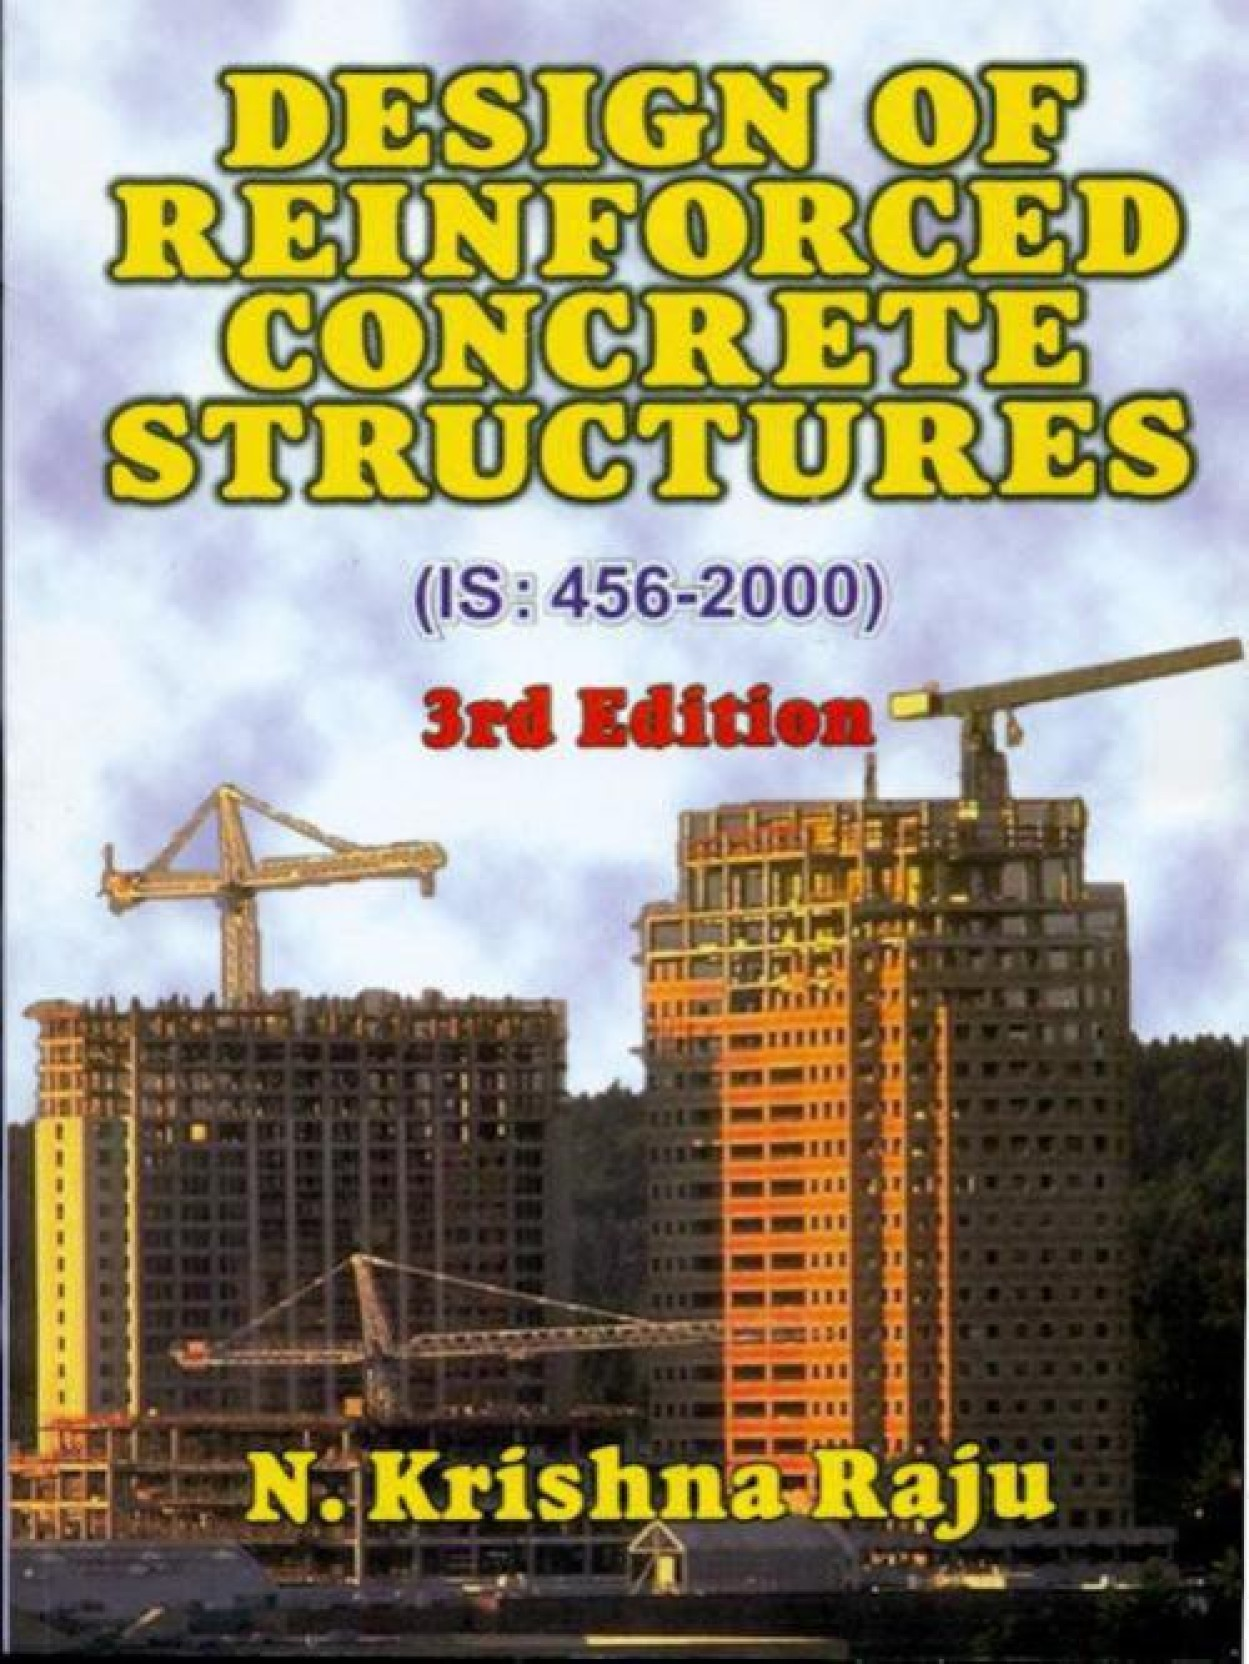 Design of Reinforced Concrete Structures (IS:456-2000) 3rd Edition. Home